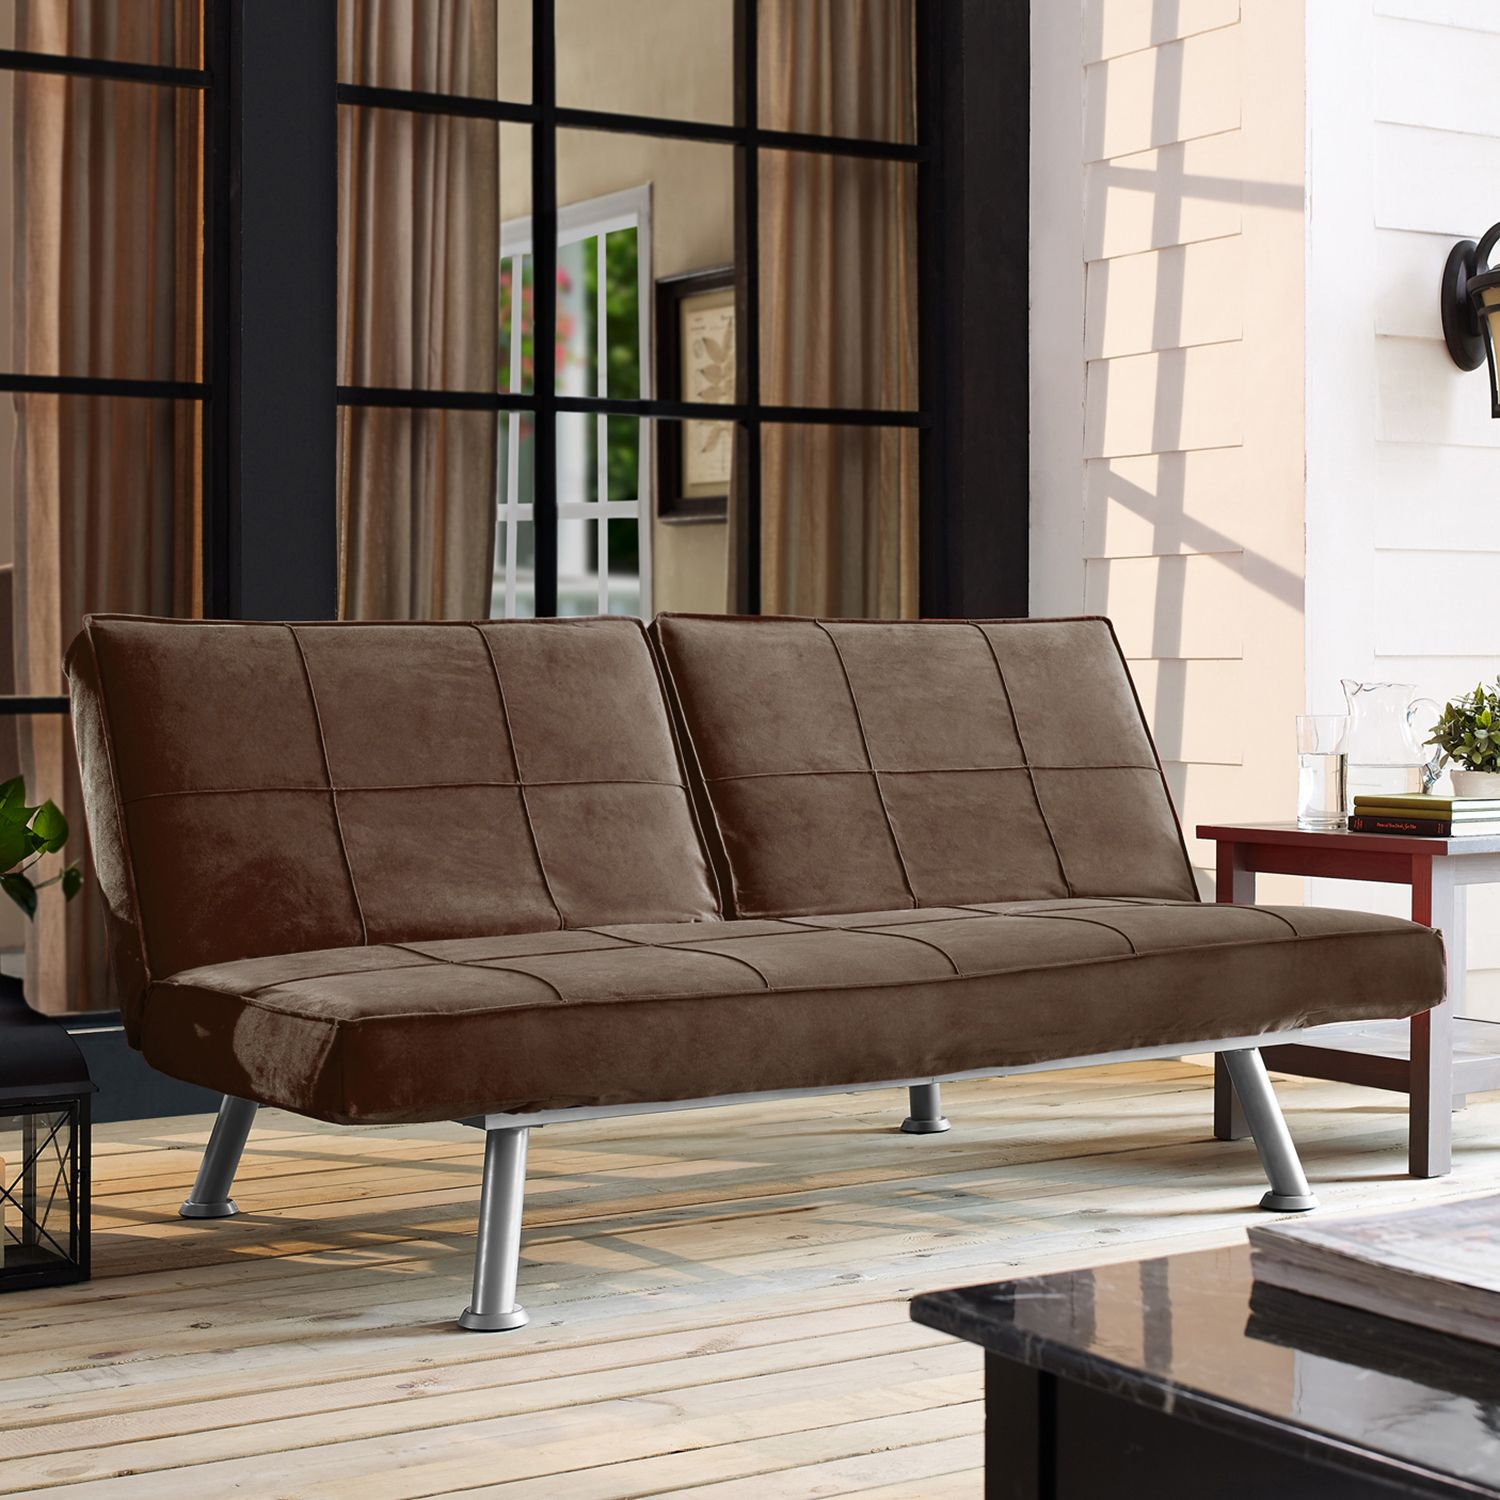 Medium image of serta maxon futon